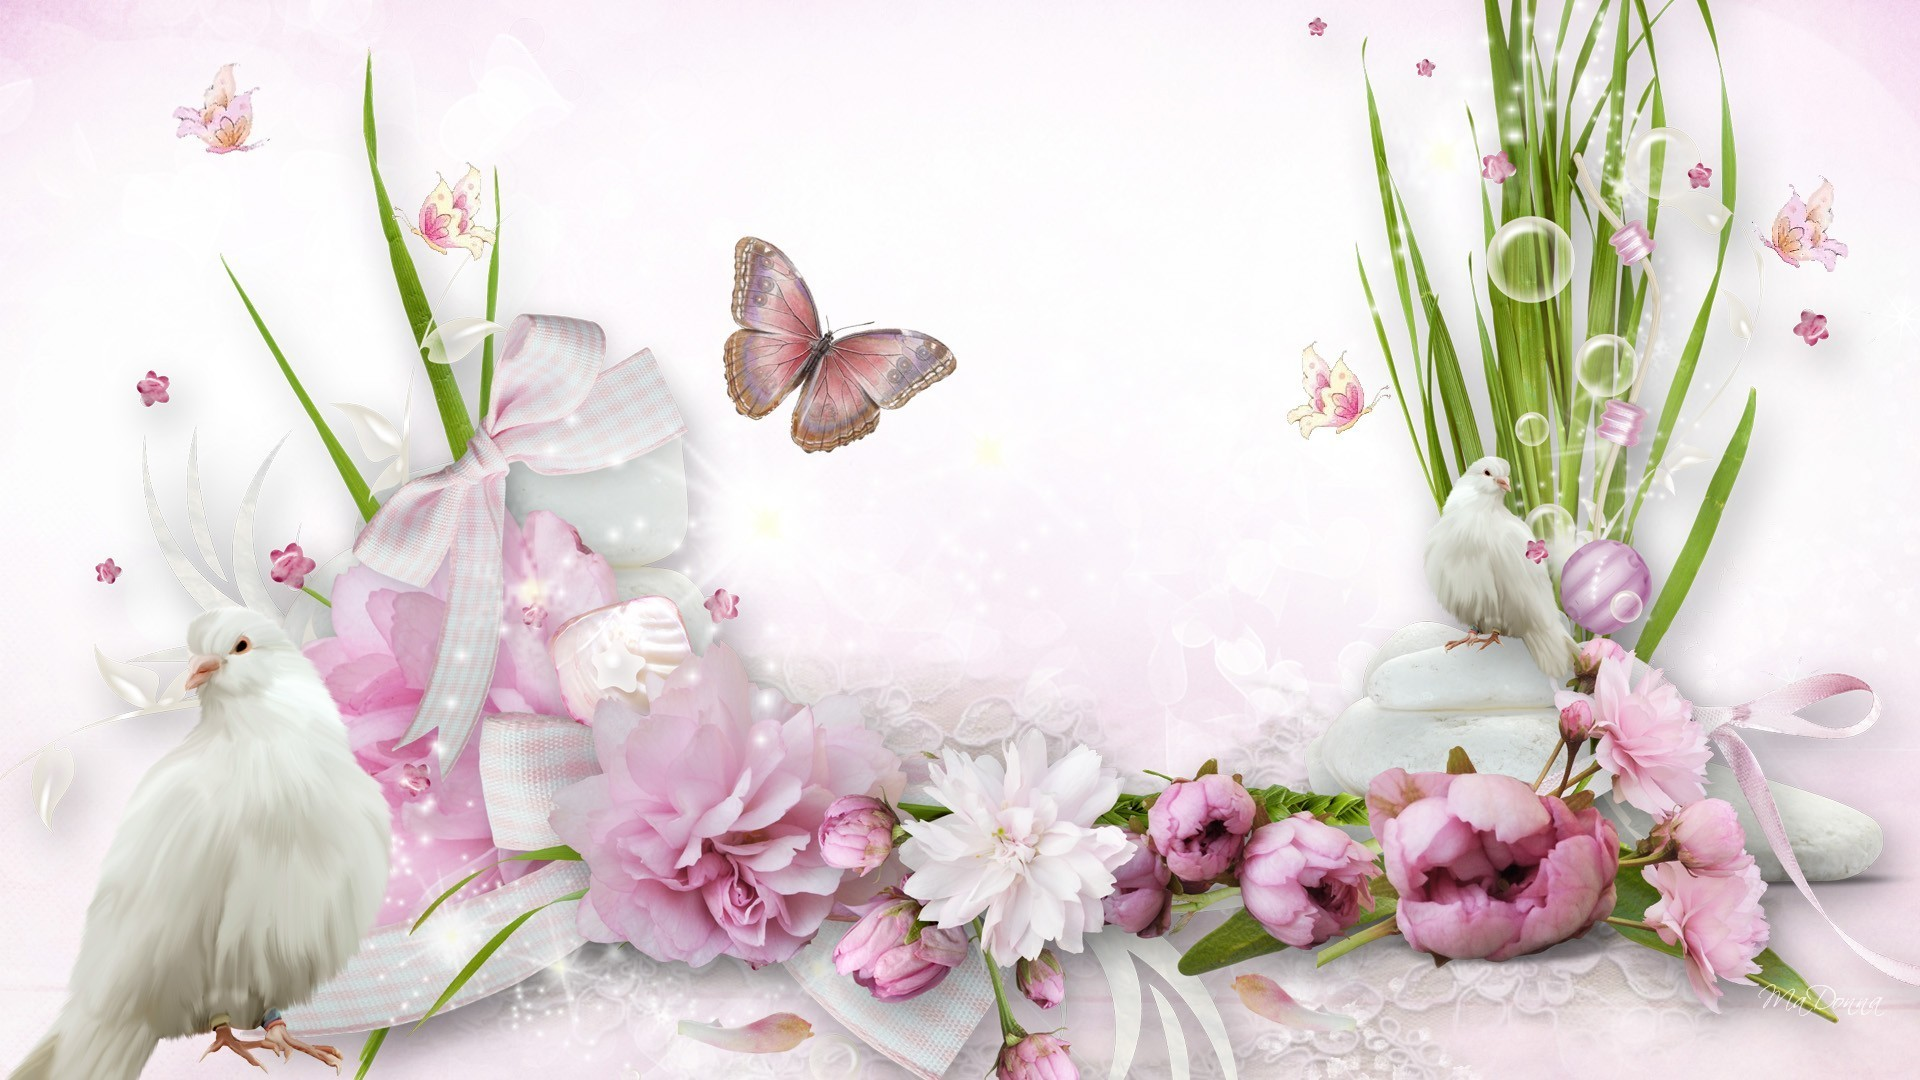 Res: 1920x1080, Firefox Pink Grass Peonies Prejudise Ribbons Doves Bows Summer Prejudice  Birds Persona Lace Flowers Soft Flower Desktop Background Hd -